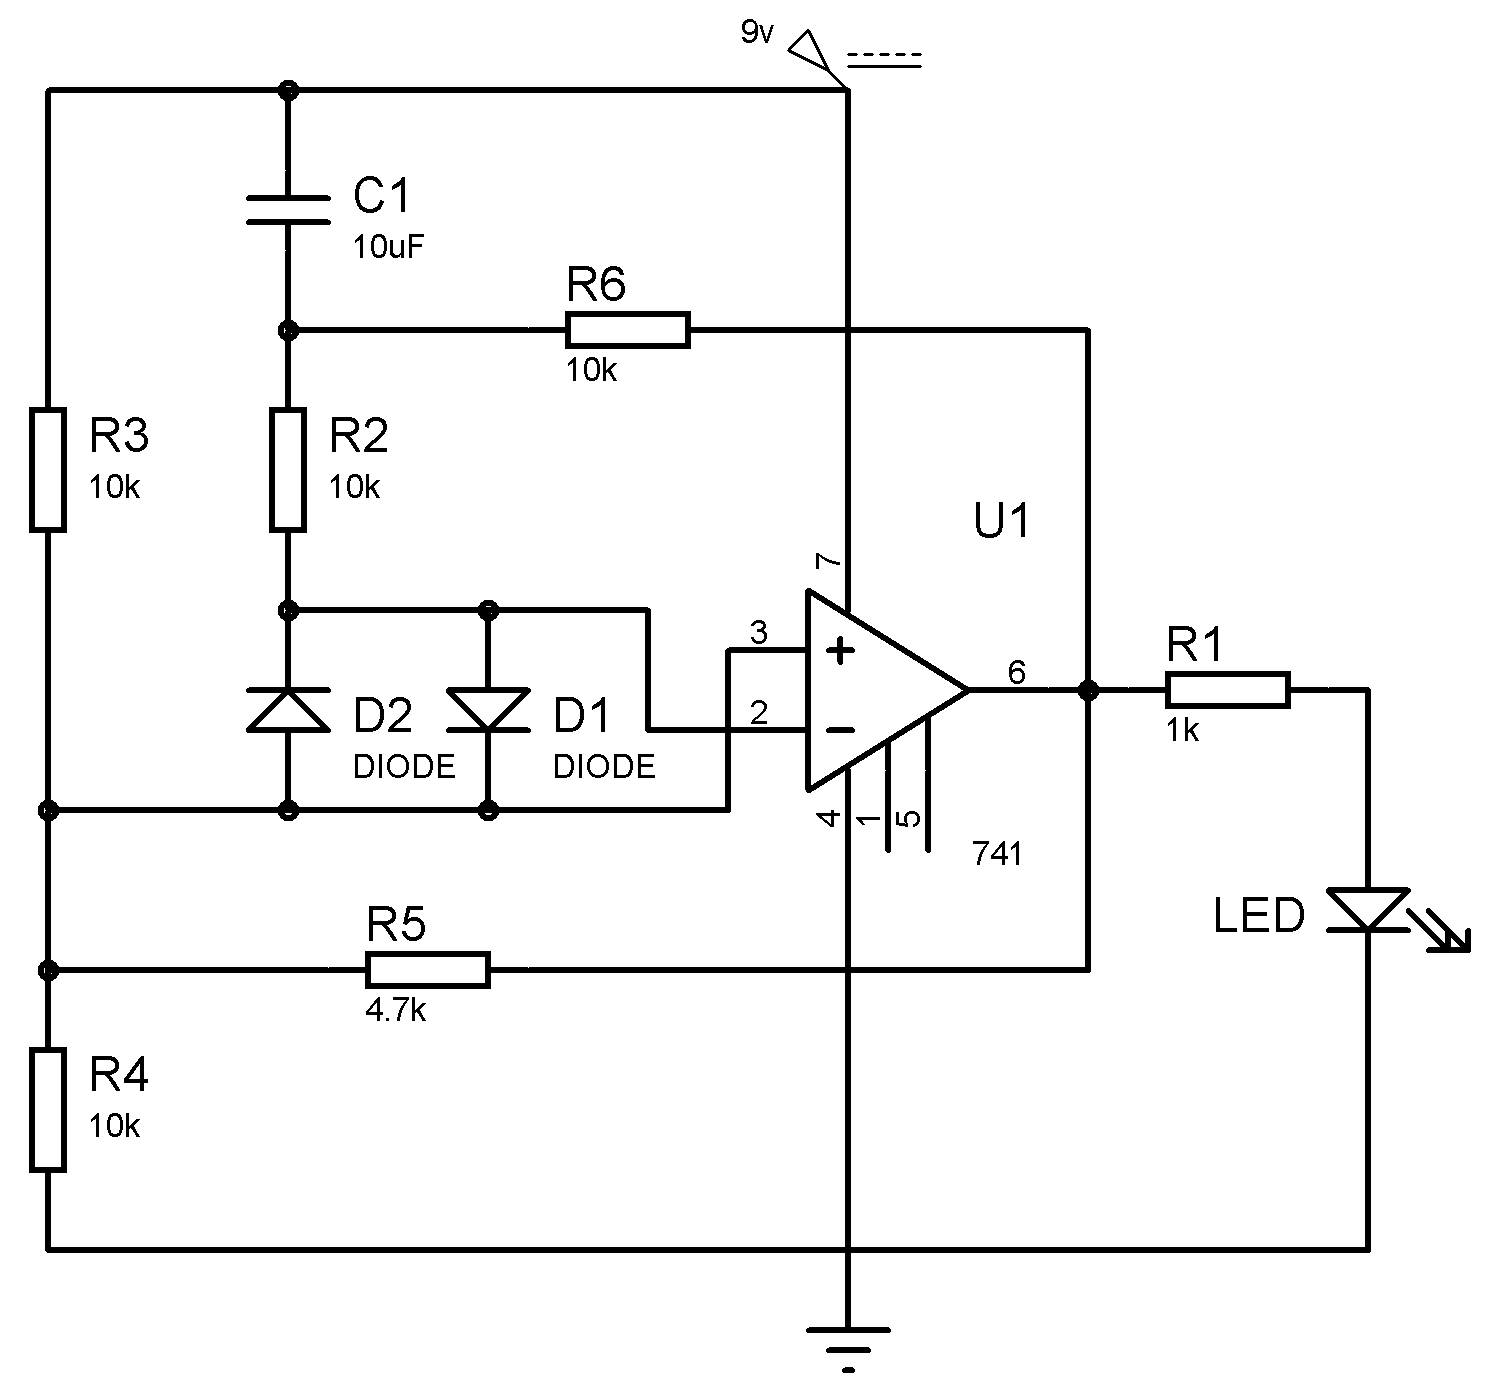 Op Amp Ic Lm741 Tester Circuit Diagram Opamp Inverting Amplifier Summer Non